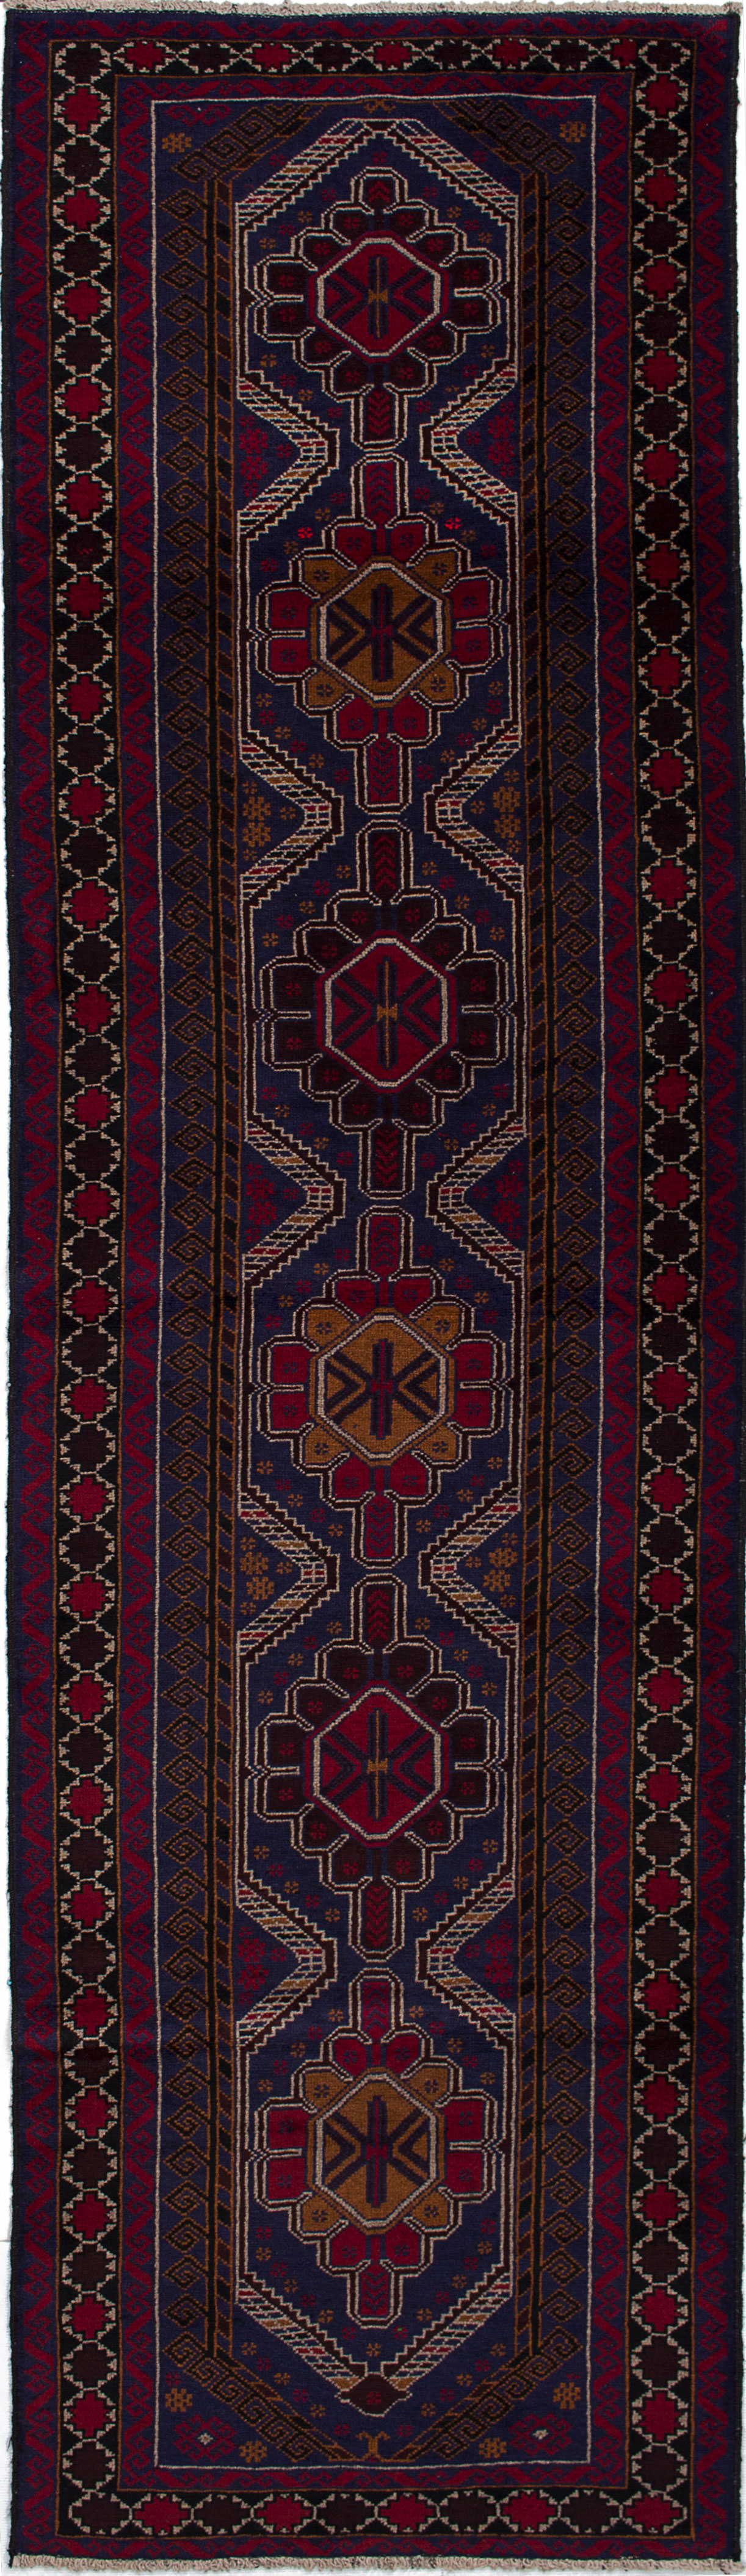 """Hand-knotted Teimani Navy Blue, Red Wool Rug 2'11"""" x 10'6"""" Size: 2'11"""" x 10'6"""""""